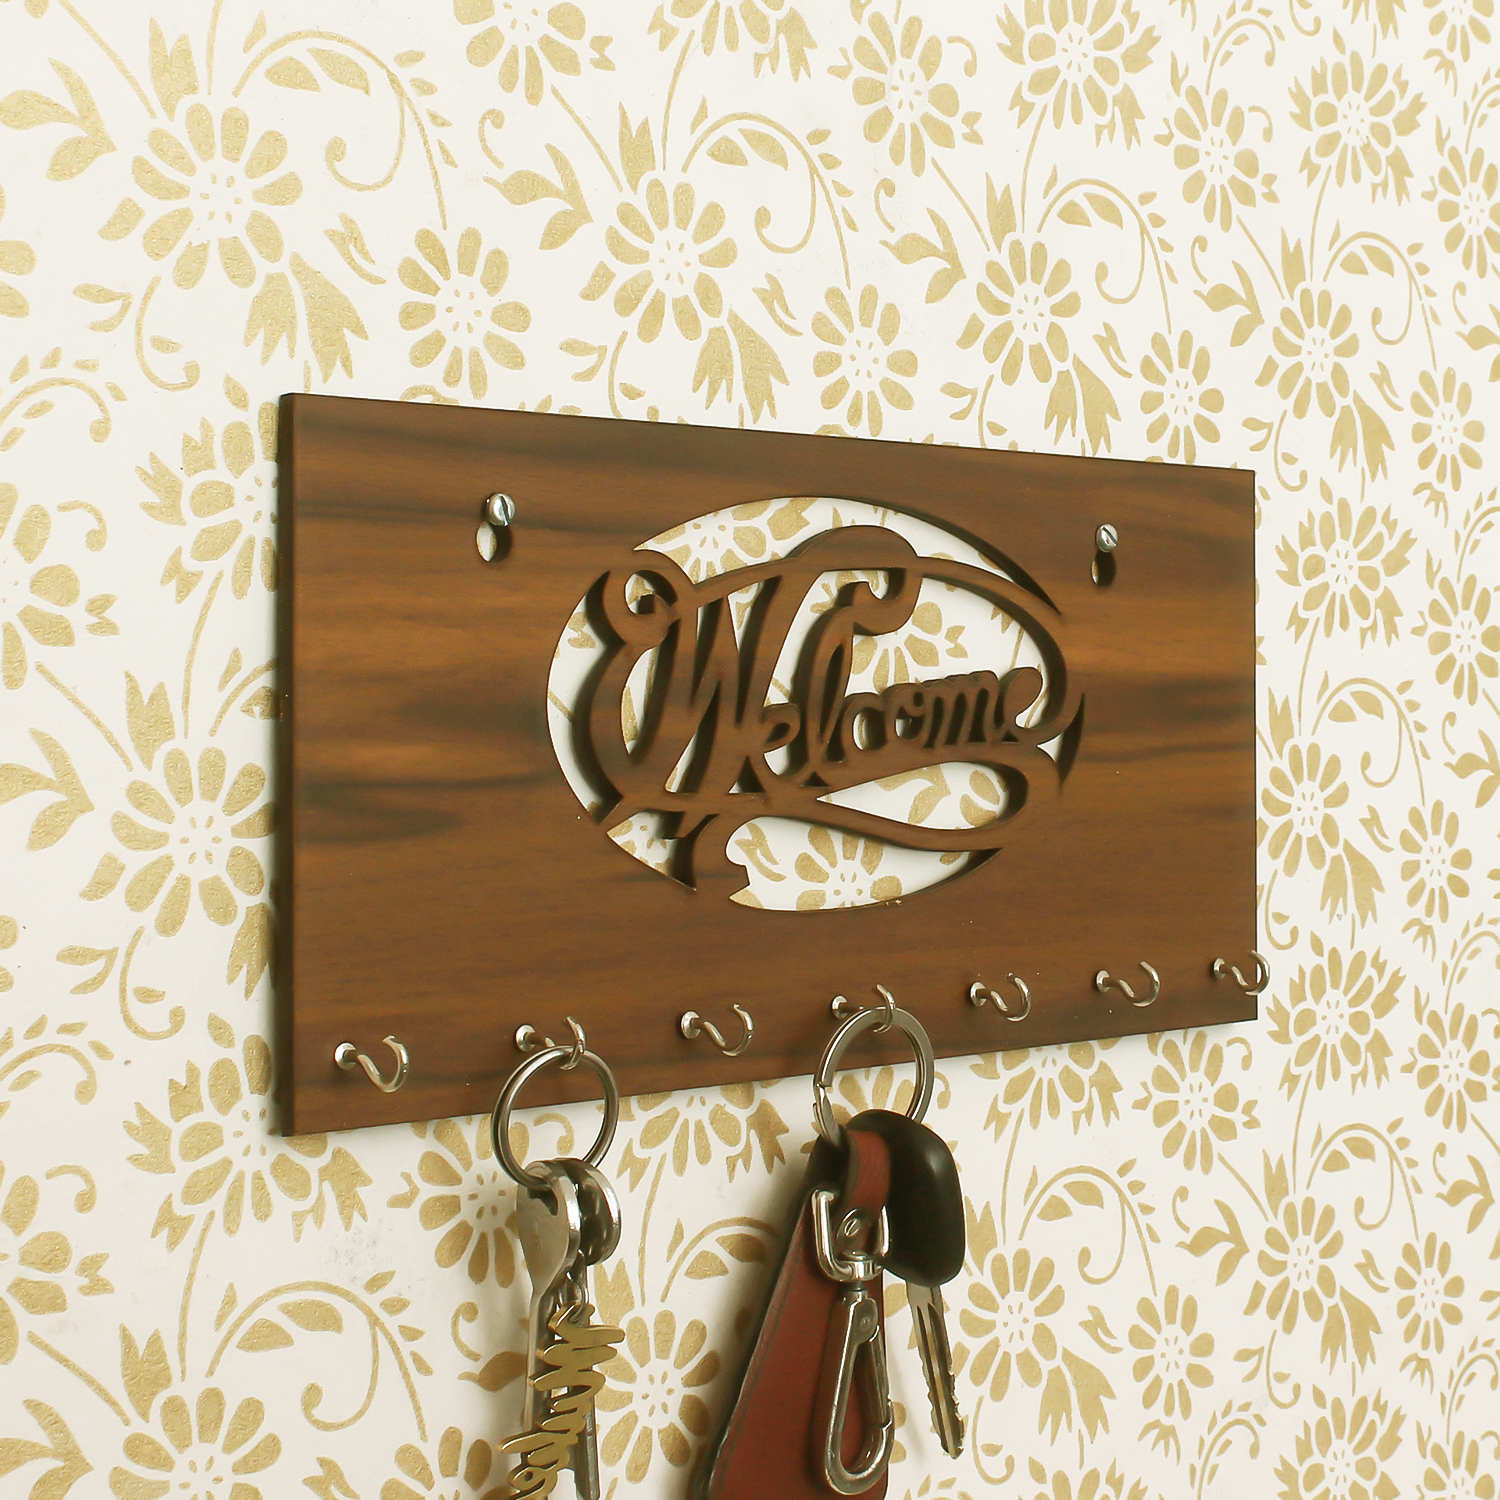 Welcome Theme Wooden Key Holder with 7 Hooks Indian Home Decor